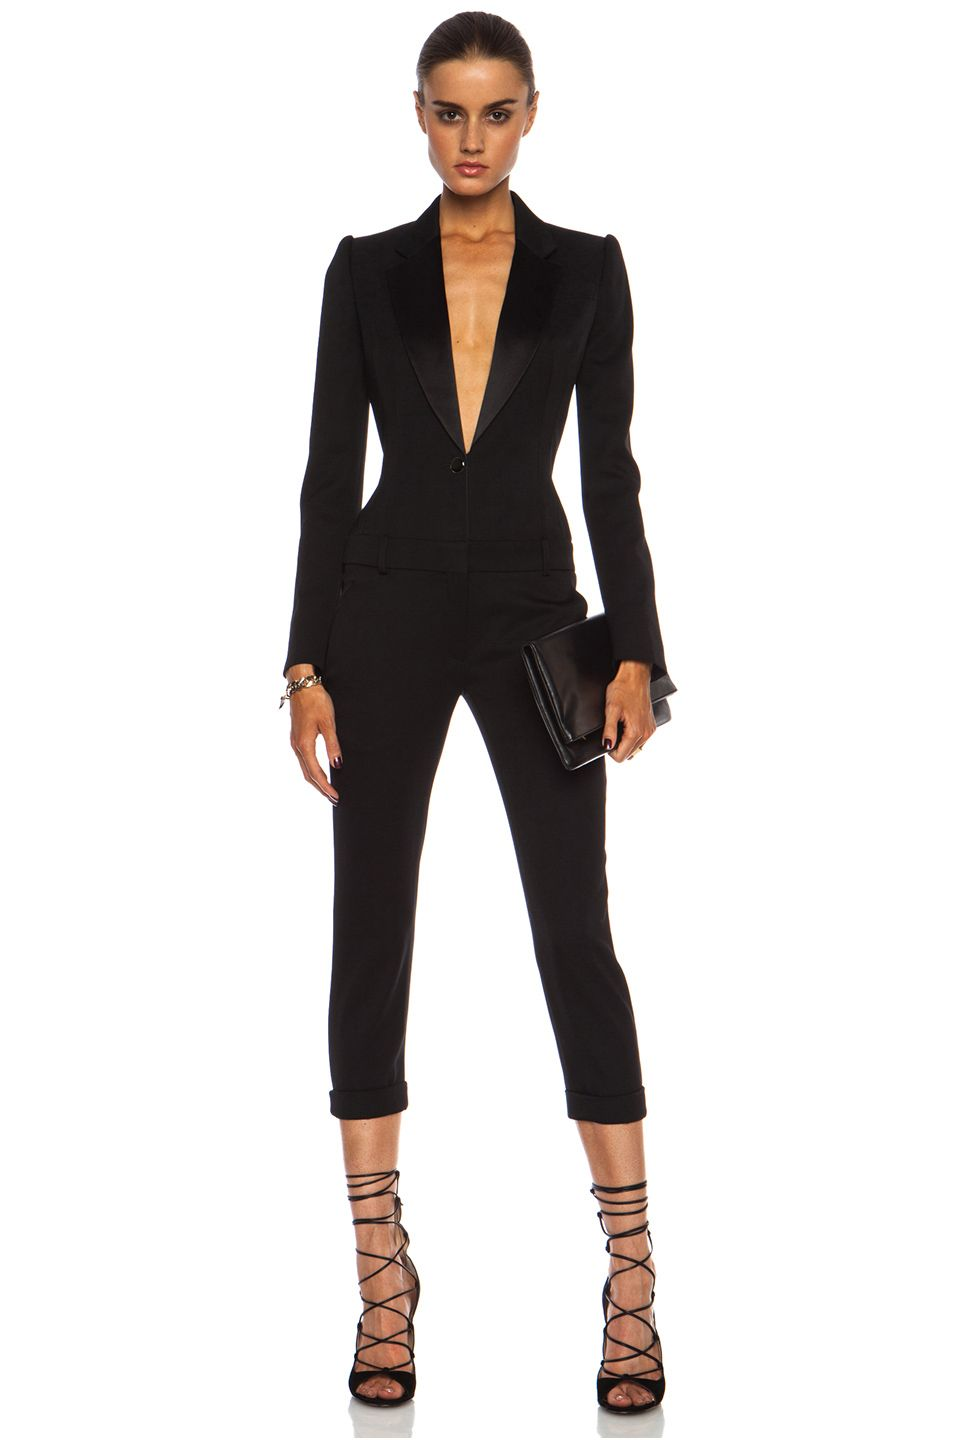 Popular Theres Nothing Like A Design From Our Edit Of Designer Jumpsuits When It Comes To Effortless  As More Casual Numbers That Are Ideal For Dressing Up Or Down Shop Jumpsuits For Women At Farfetch Now